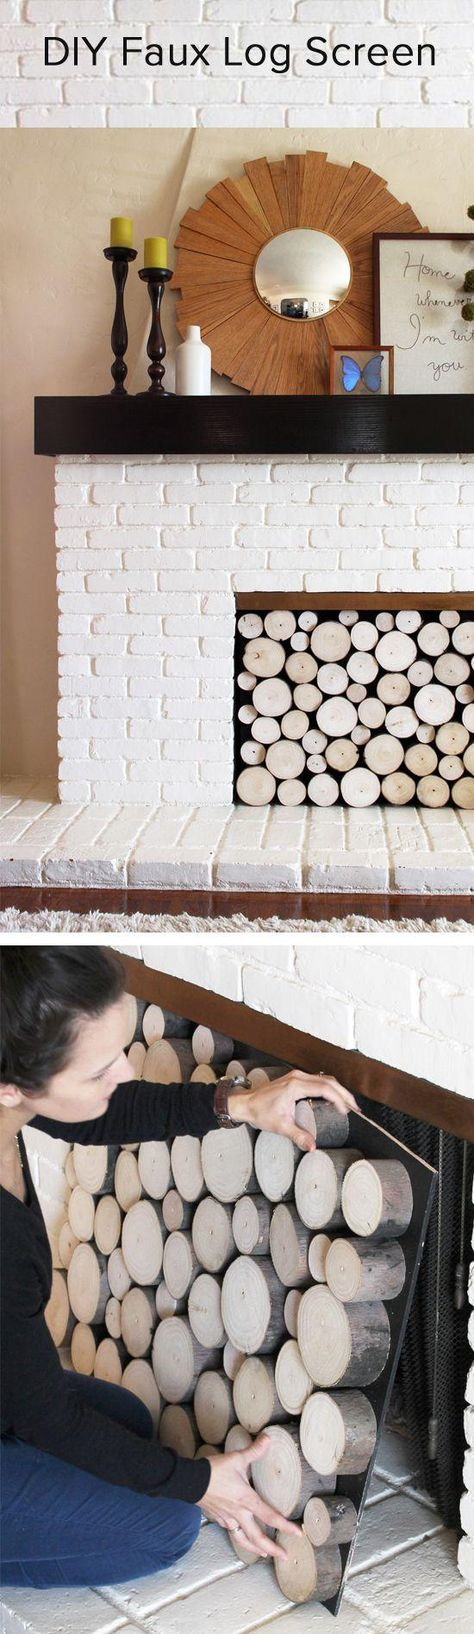 Perfectly stacked logs you can remove in seconds.